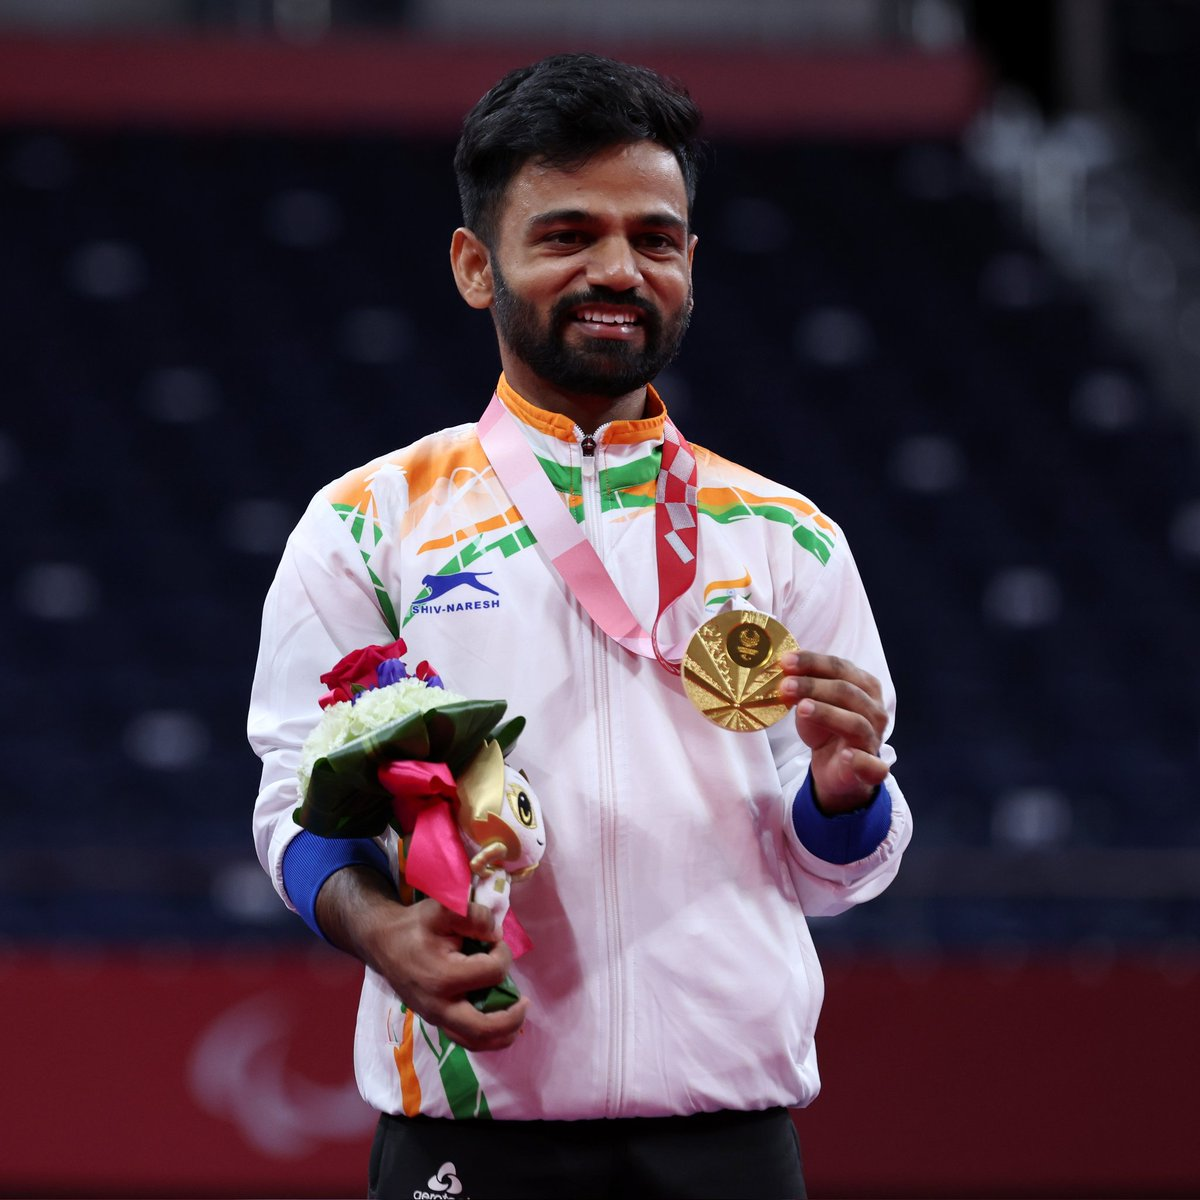 @sachin_rt: Congratulations to @Krishnanagar99 & @suhasly on winning 🥇 & 🥈 respectively in #badminton! 👏🏻Our performance this year at the #Paralympics has been nothing short of a fairytale & it is just the beginning.More power to our para athletes! #Praise4Para